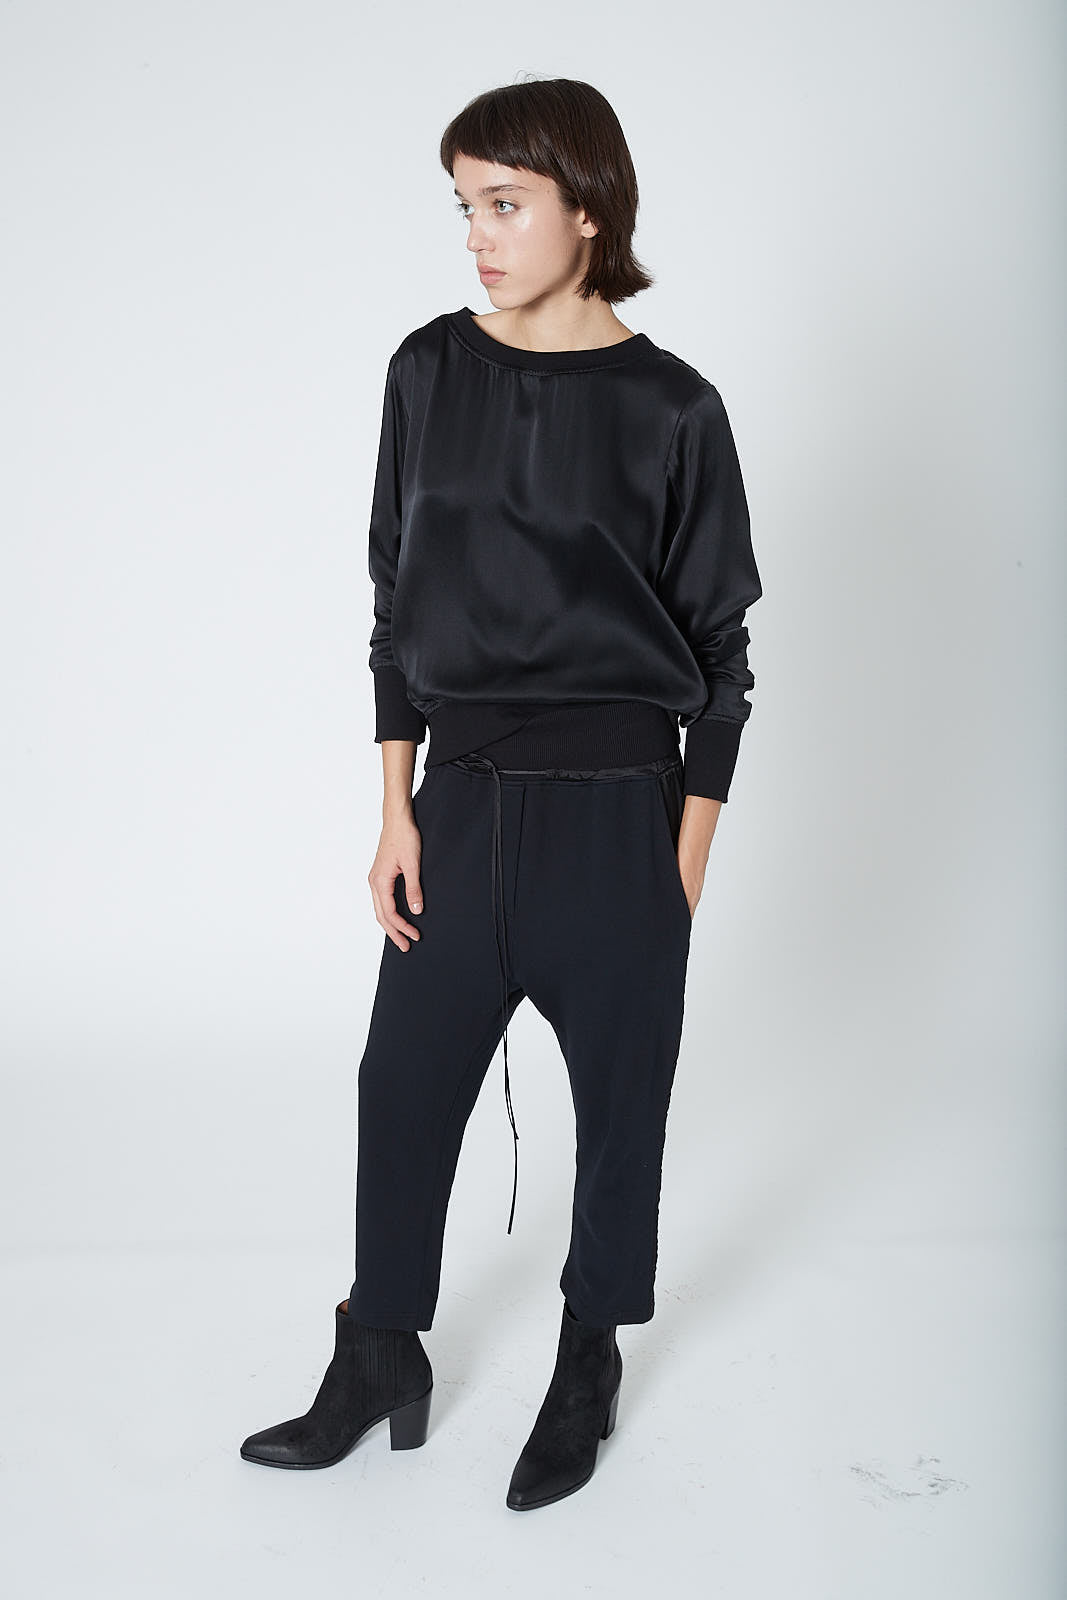 KES Drop Crotch Pants w/ Rib - Black Terry SS20